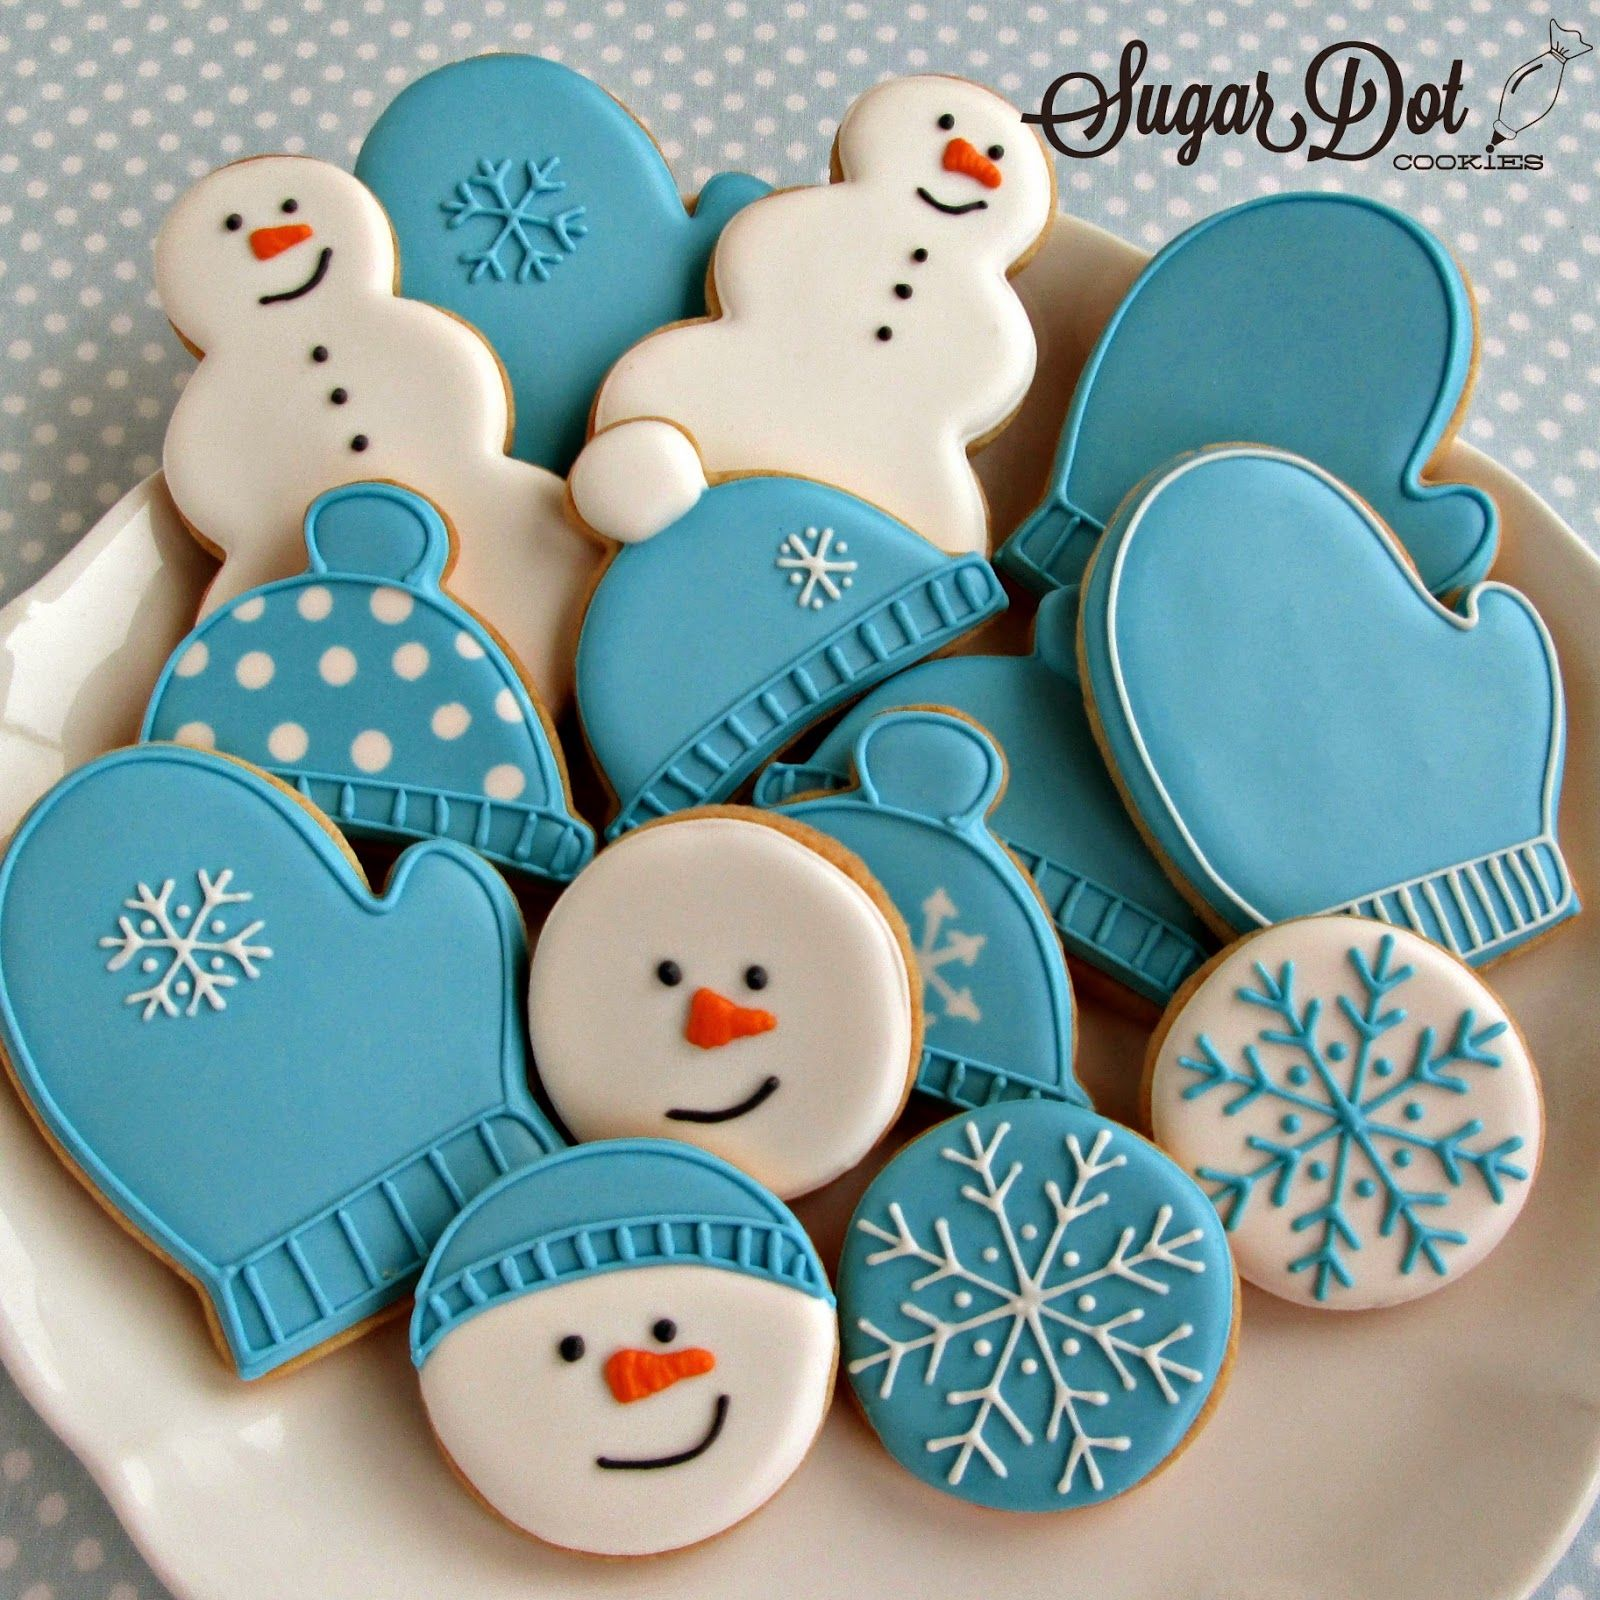 sugar dot cookies cookie decorating party january 2015 snowman cookies holiday cookies - Decorated Christmas Sugar Cookies